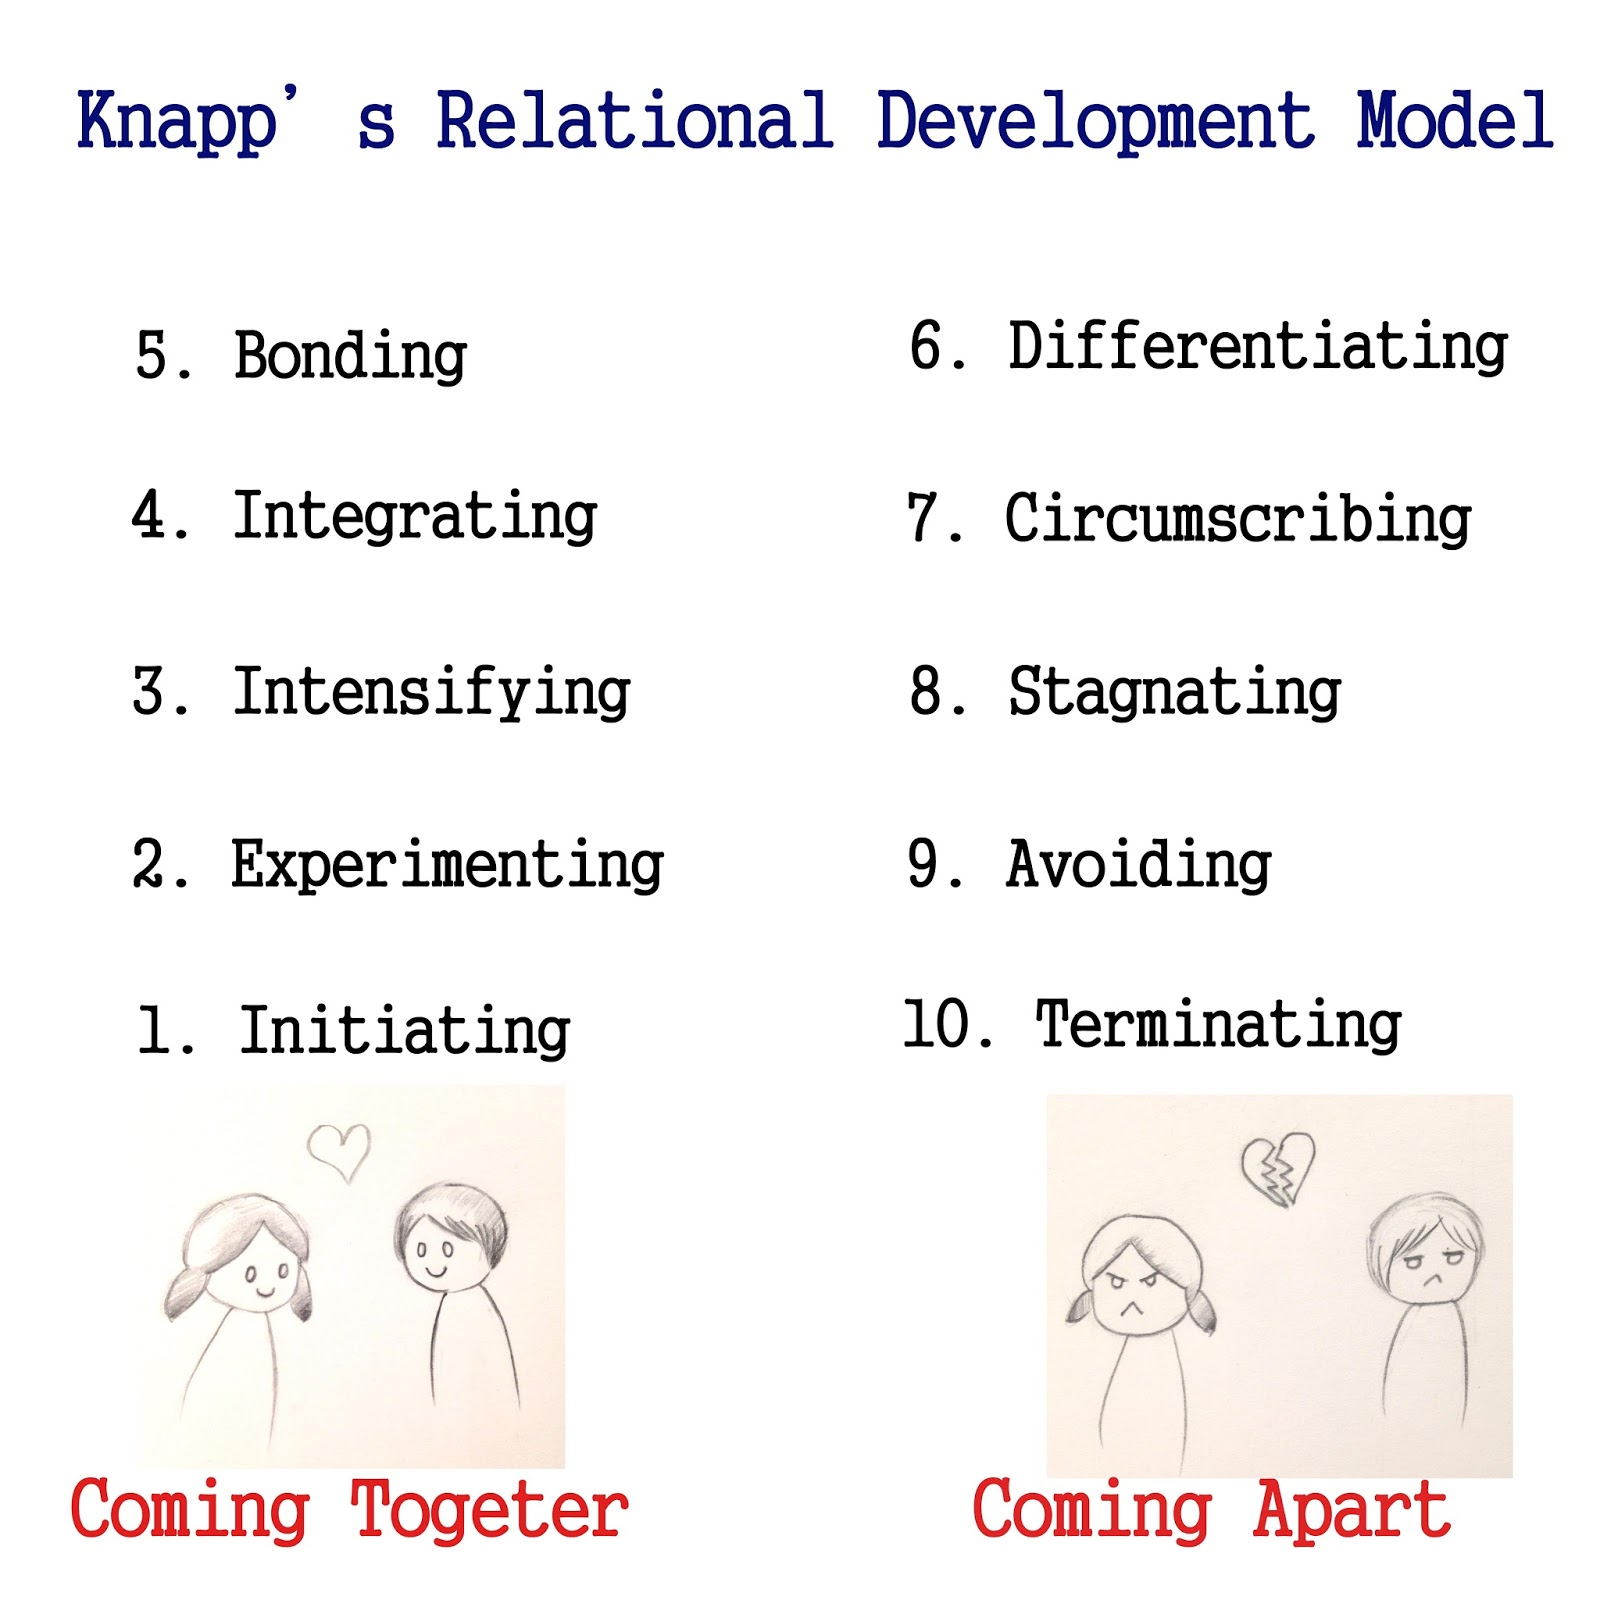 interpersonal communication and relationship development Interpersonal cognitive complexity and cross-cultural dating: an application of personal constructs psychology  relationships and communication development.